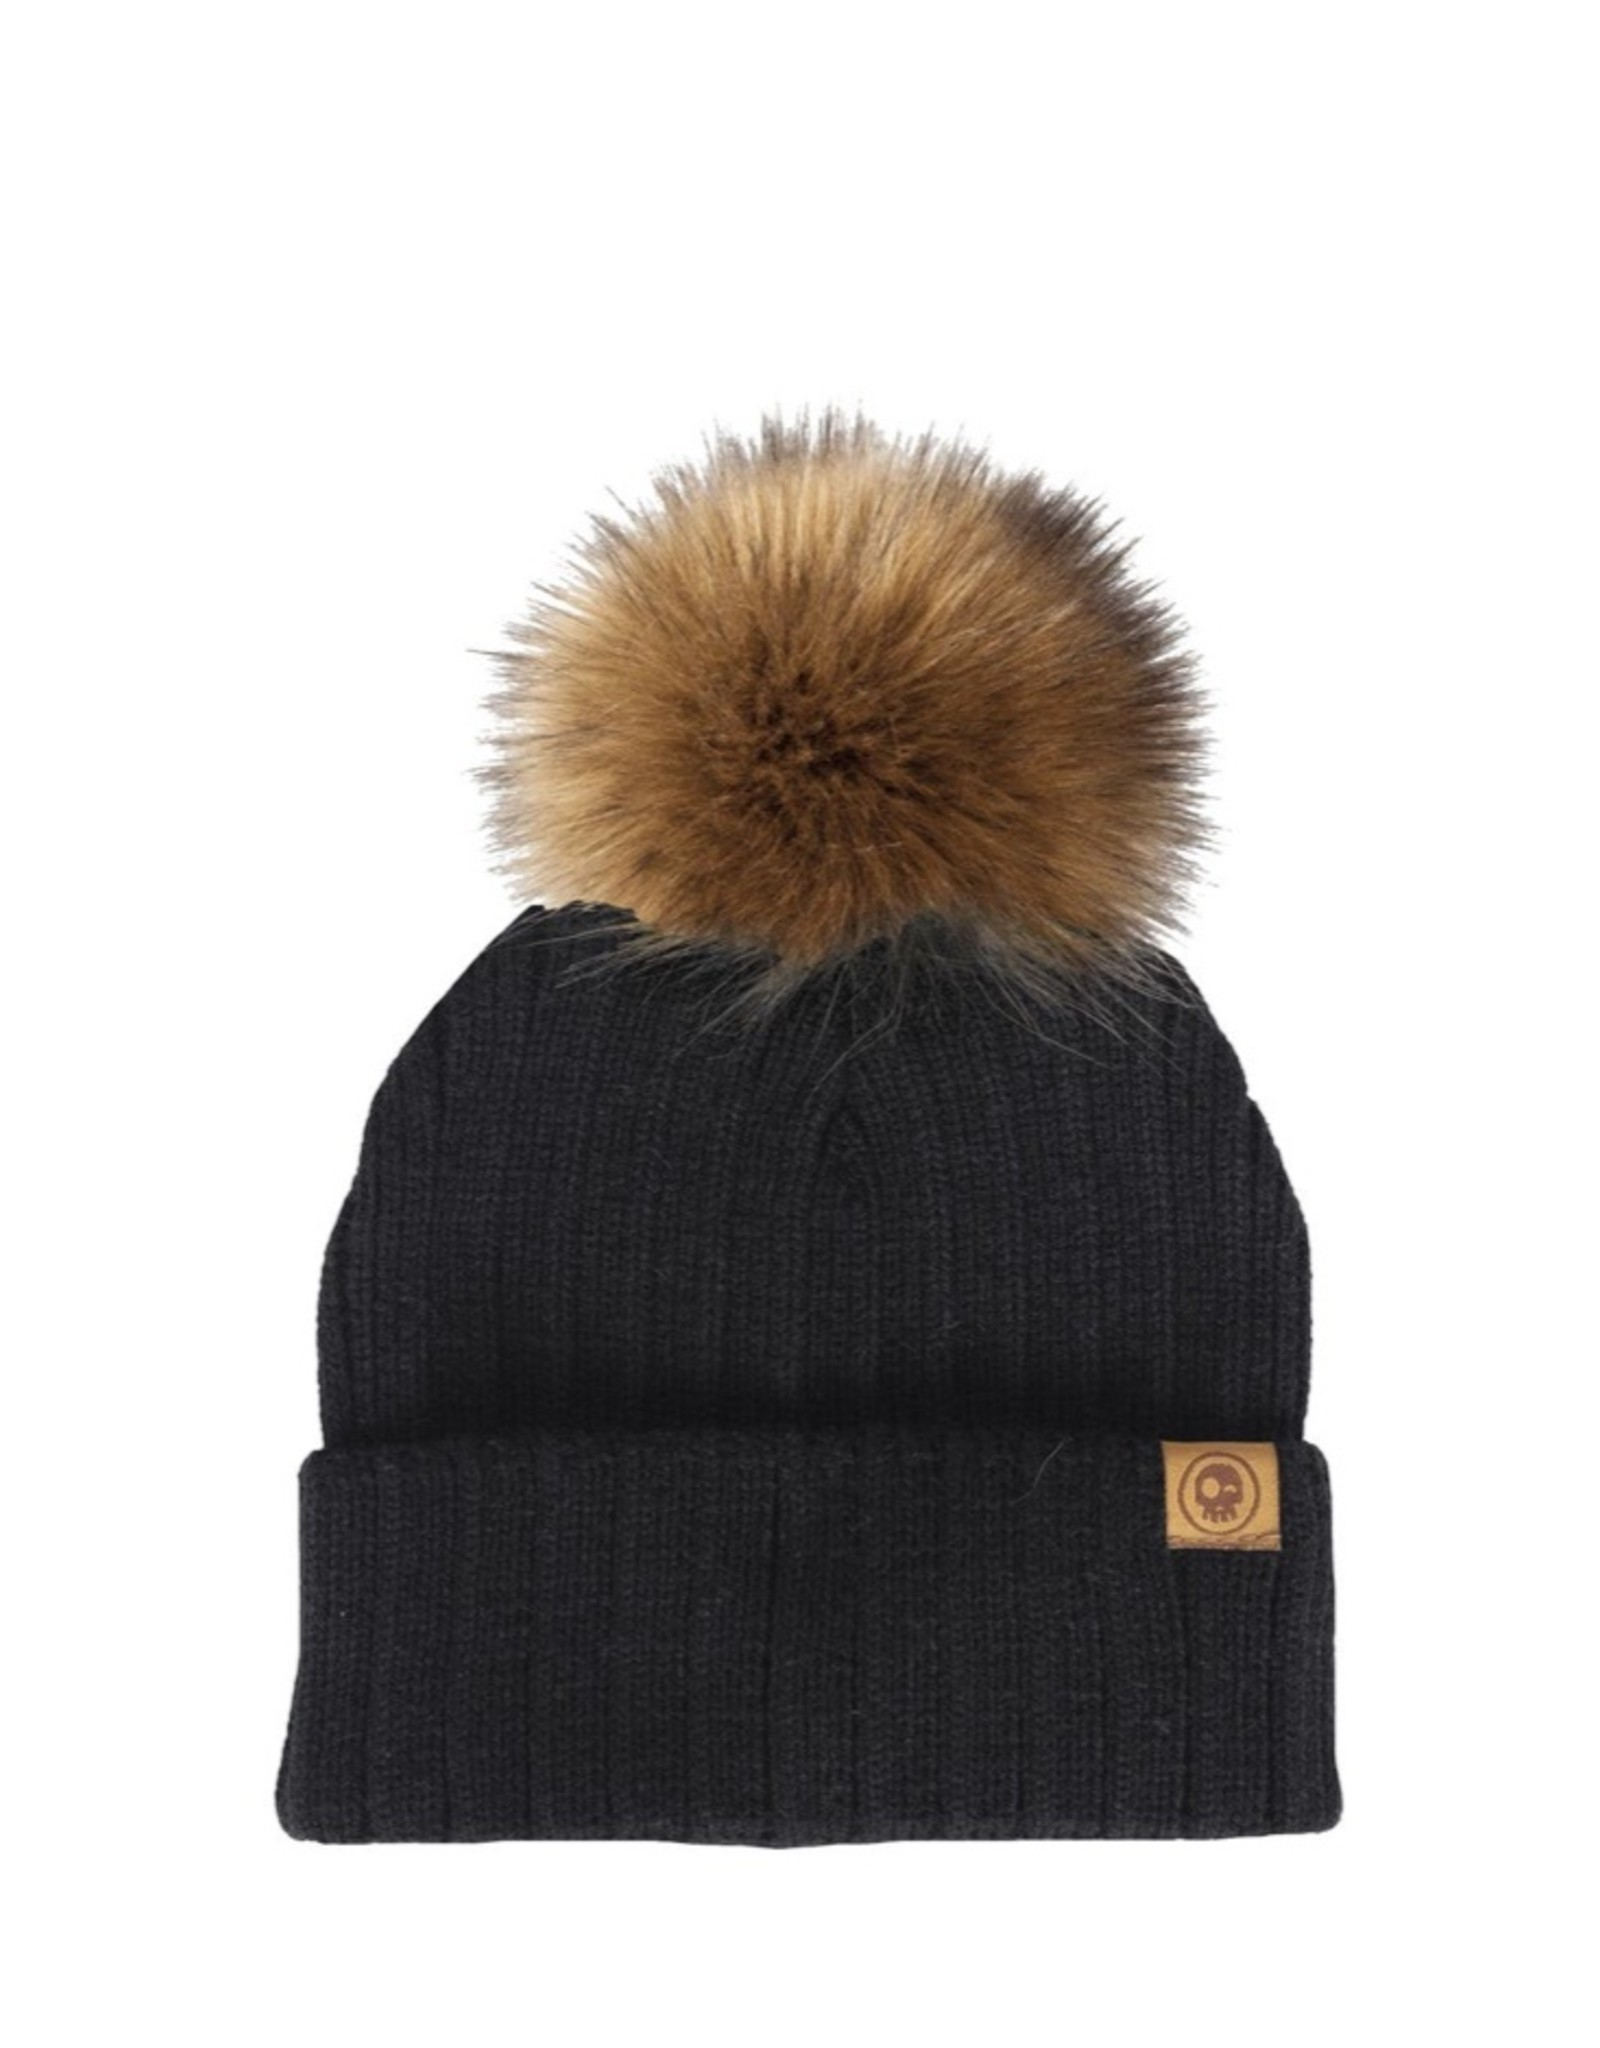 Headster Kids Headster - Classy Toque